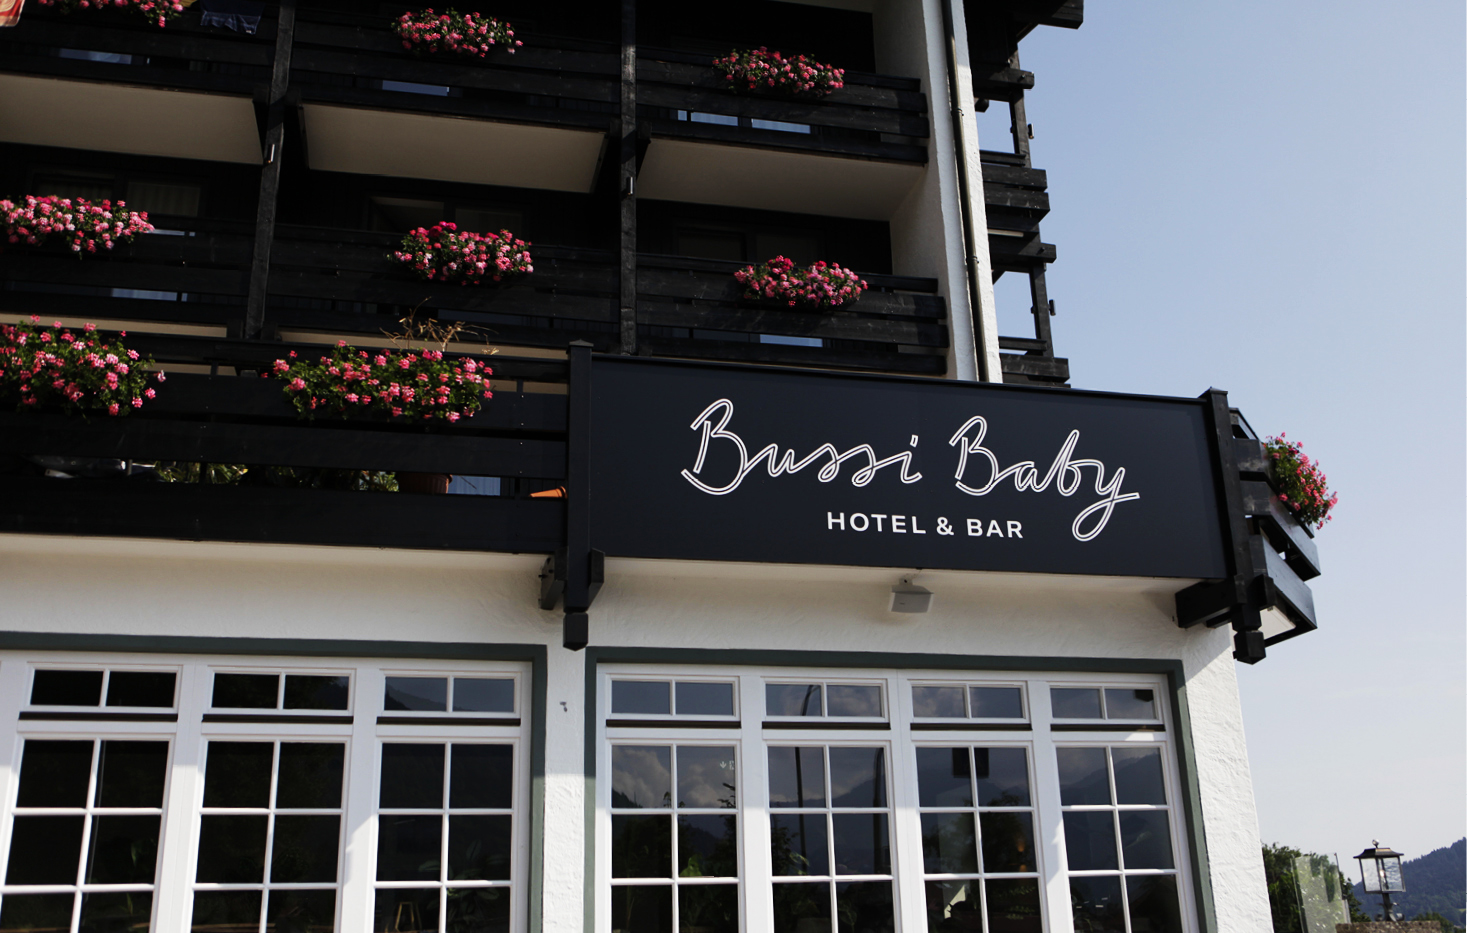 Hotel Bussi Baby am Tegernsee